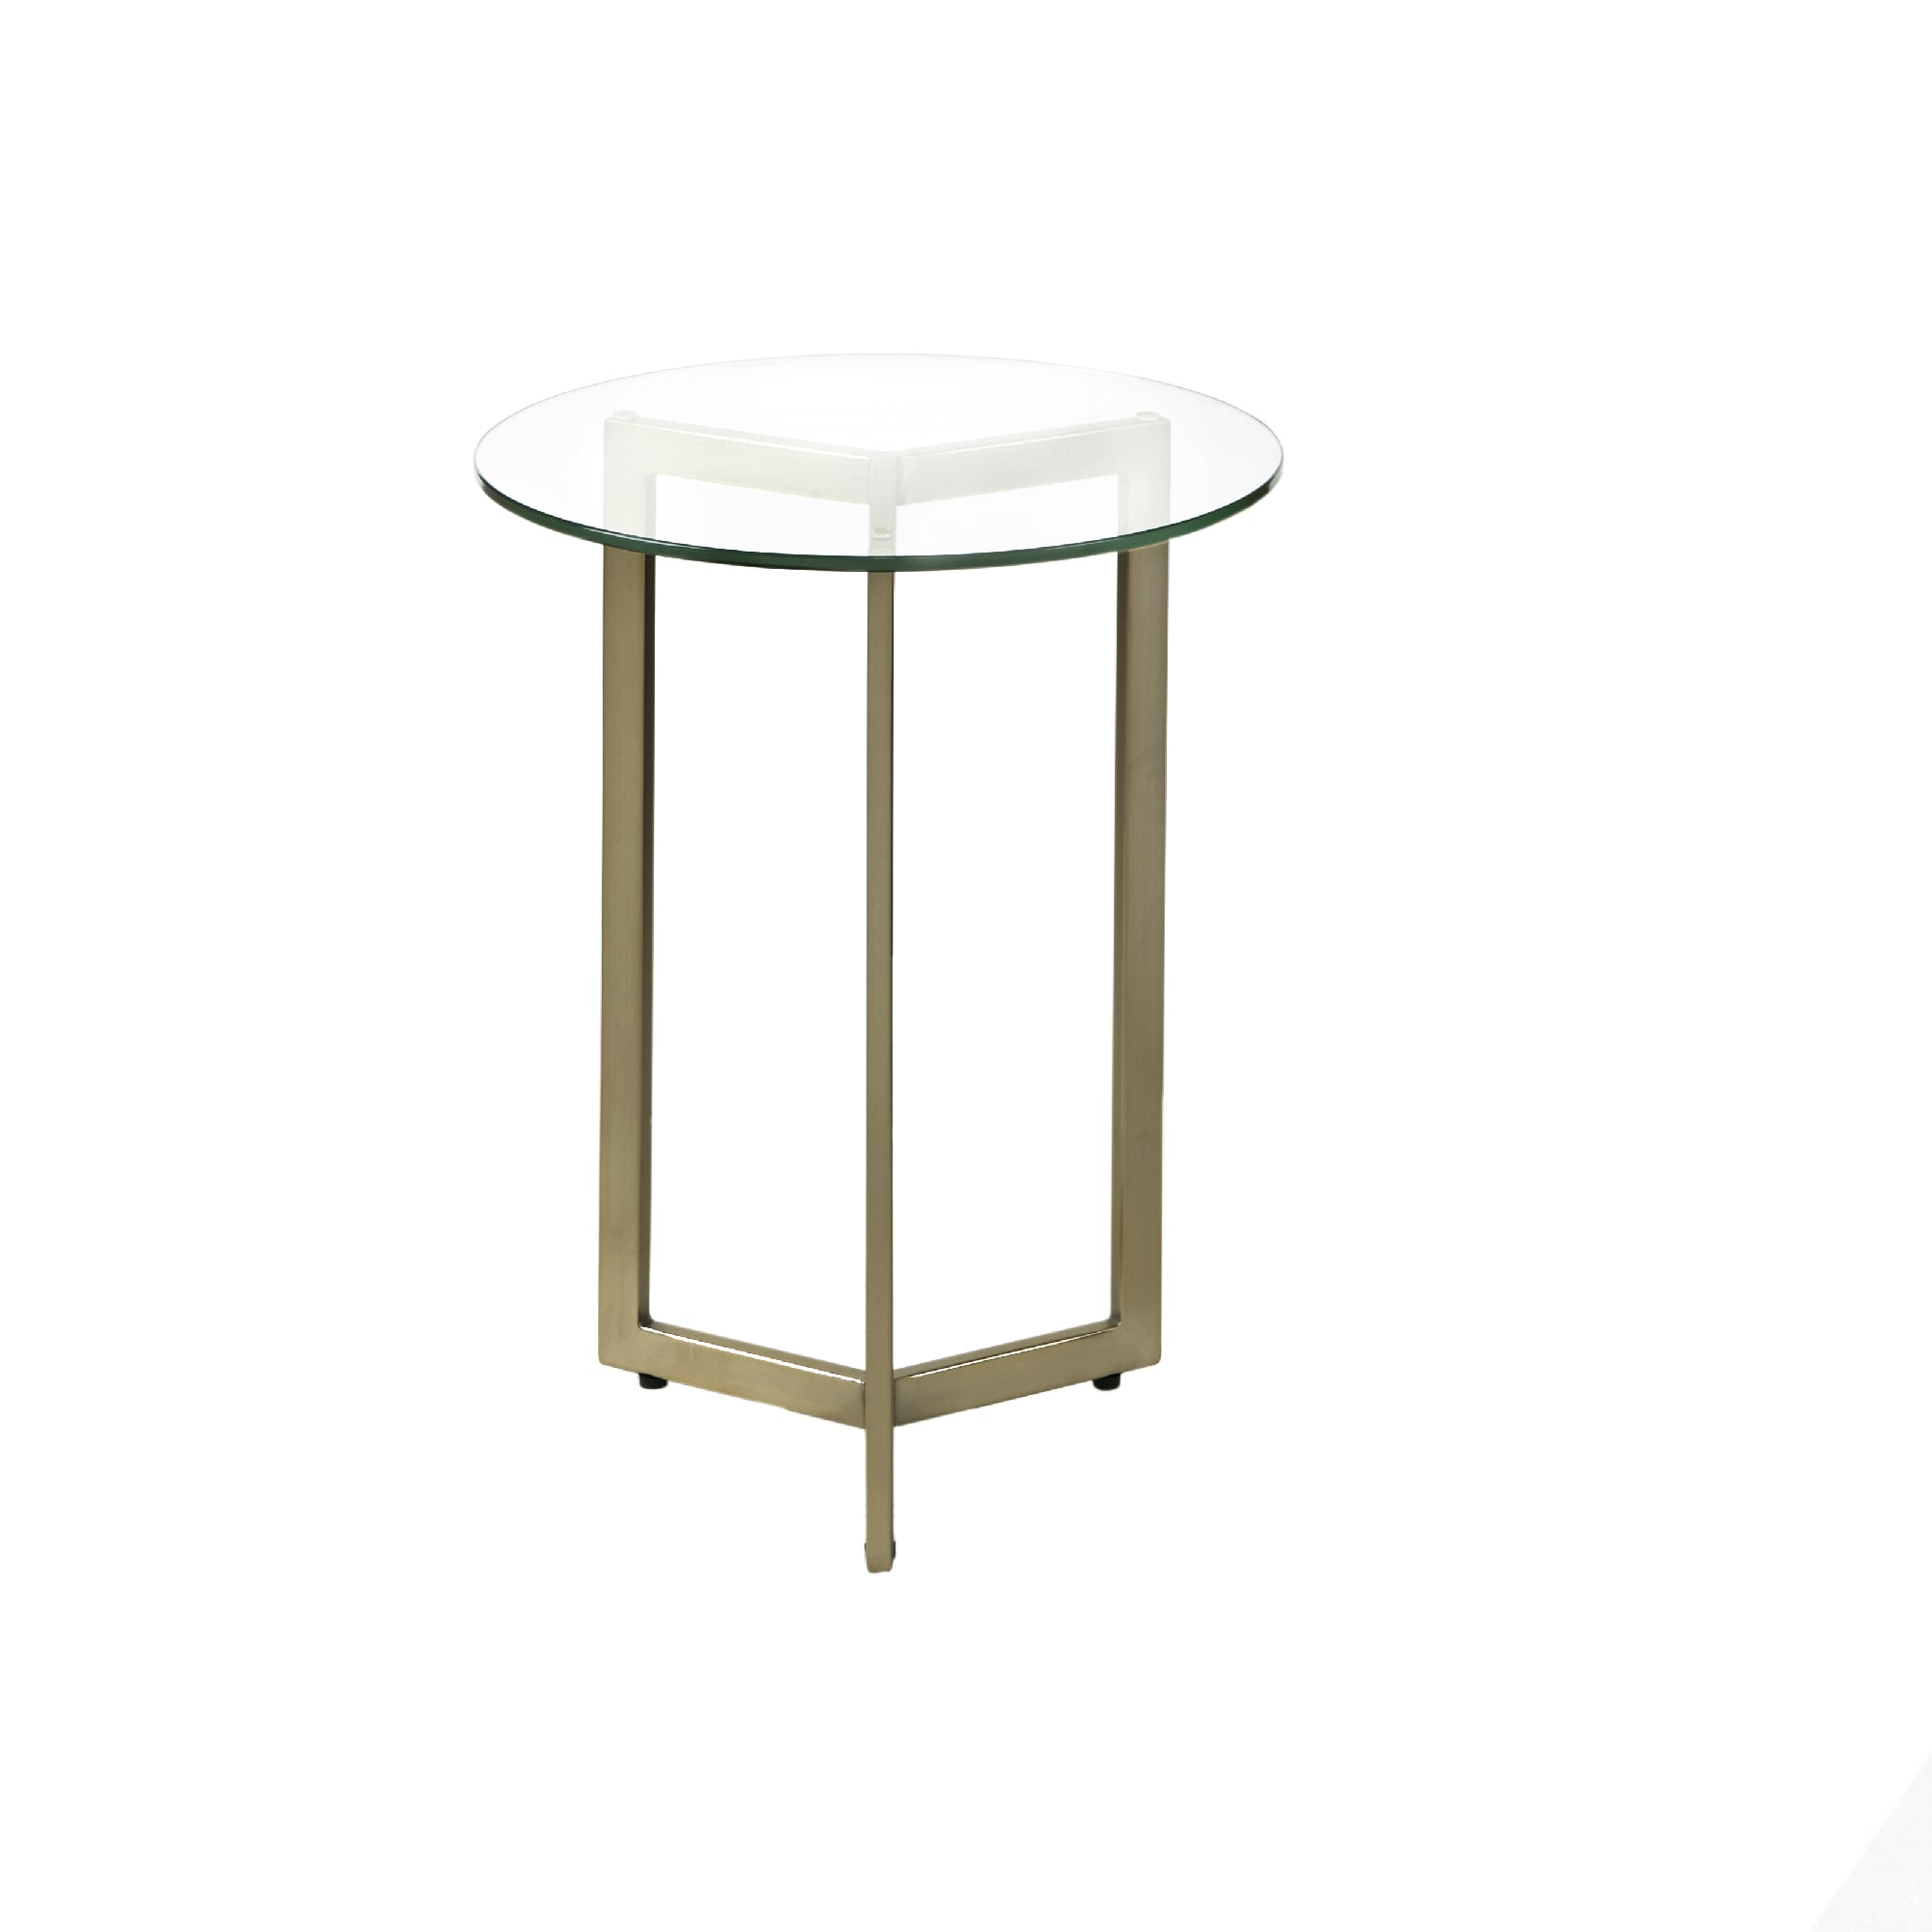 Alki Chaises Madison Park Alki Gold Round Accent End Table